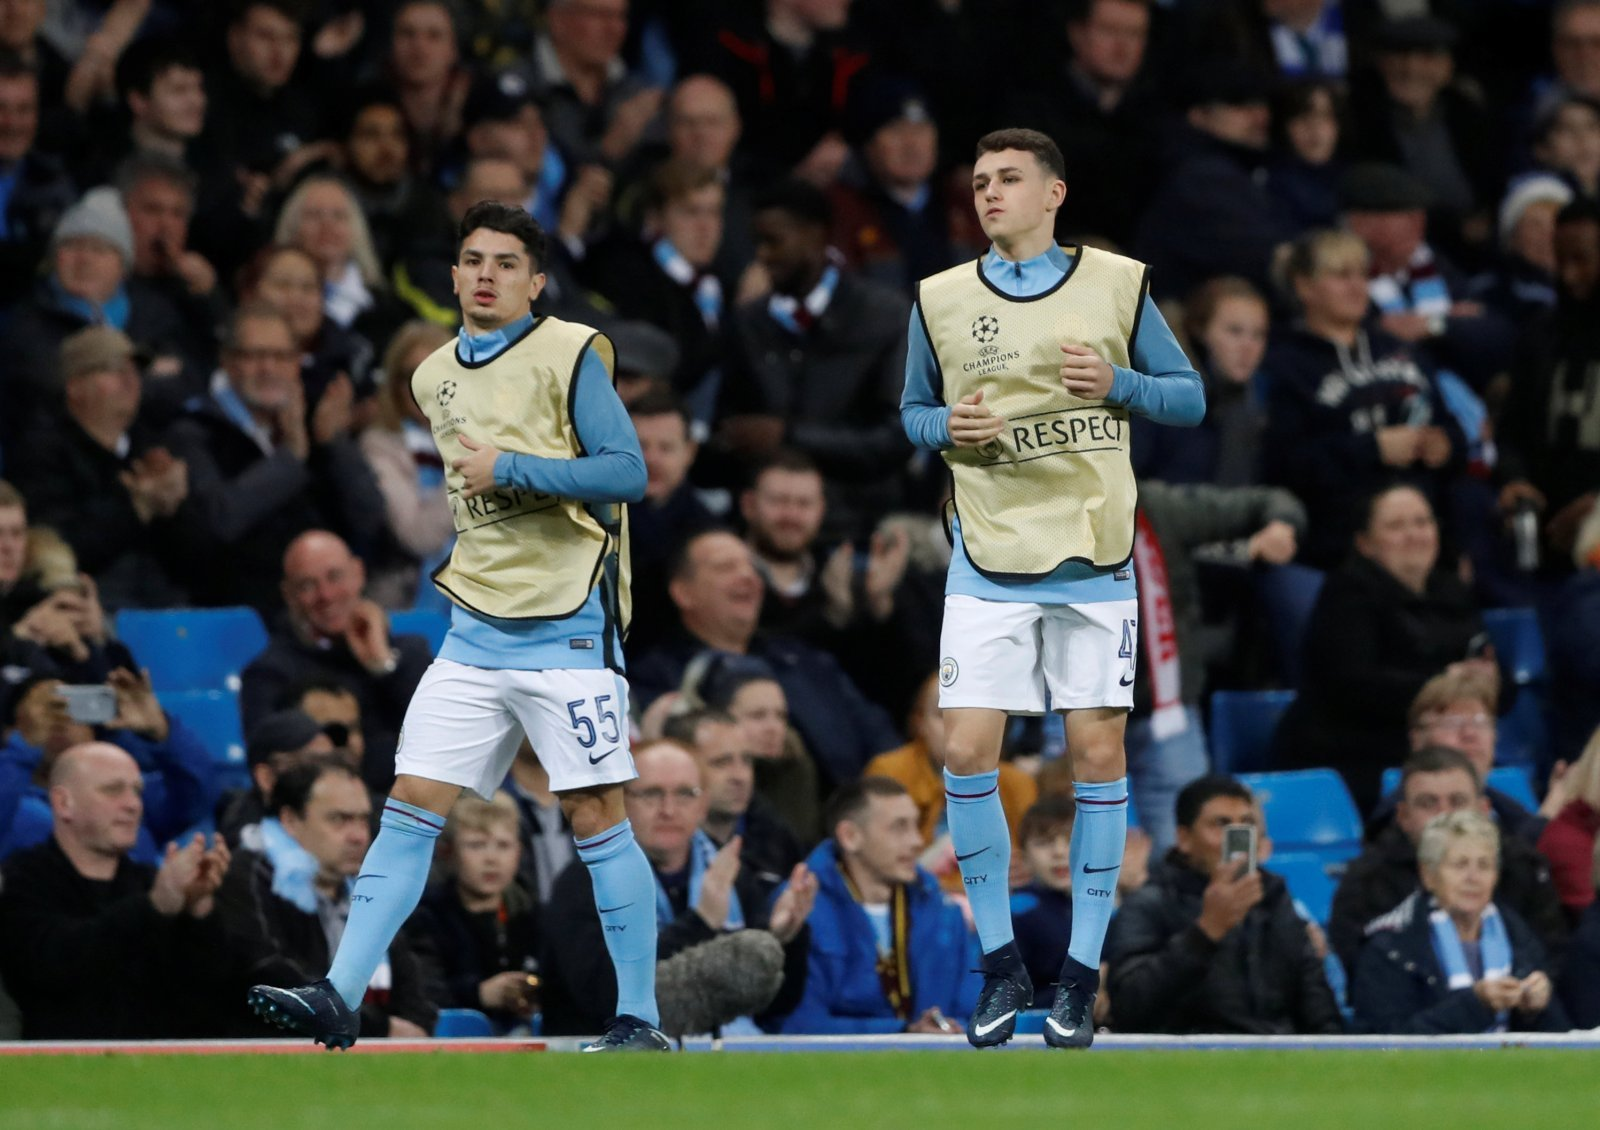 Foden and Diaz could signal the dawn of a new era at Elland Road